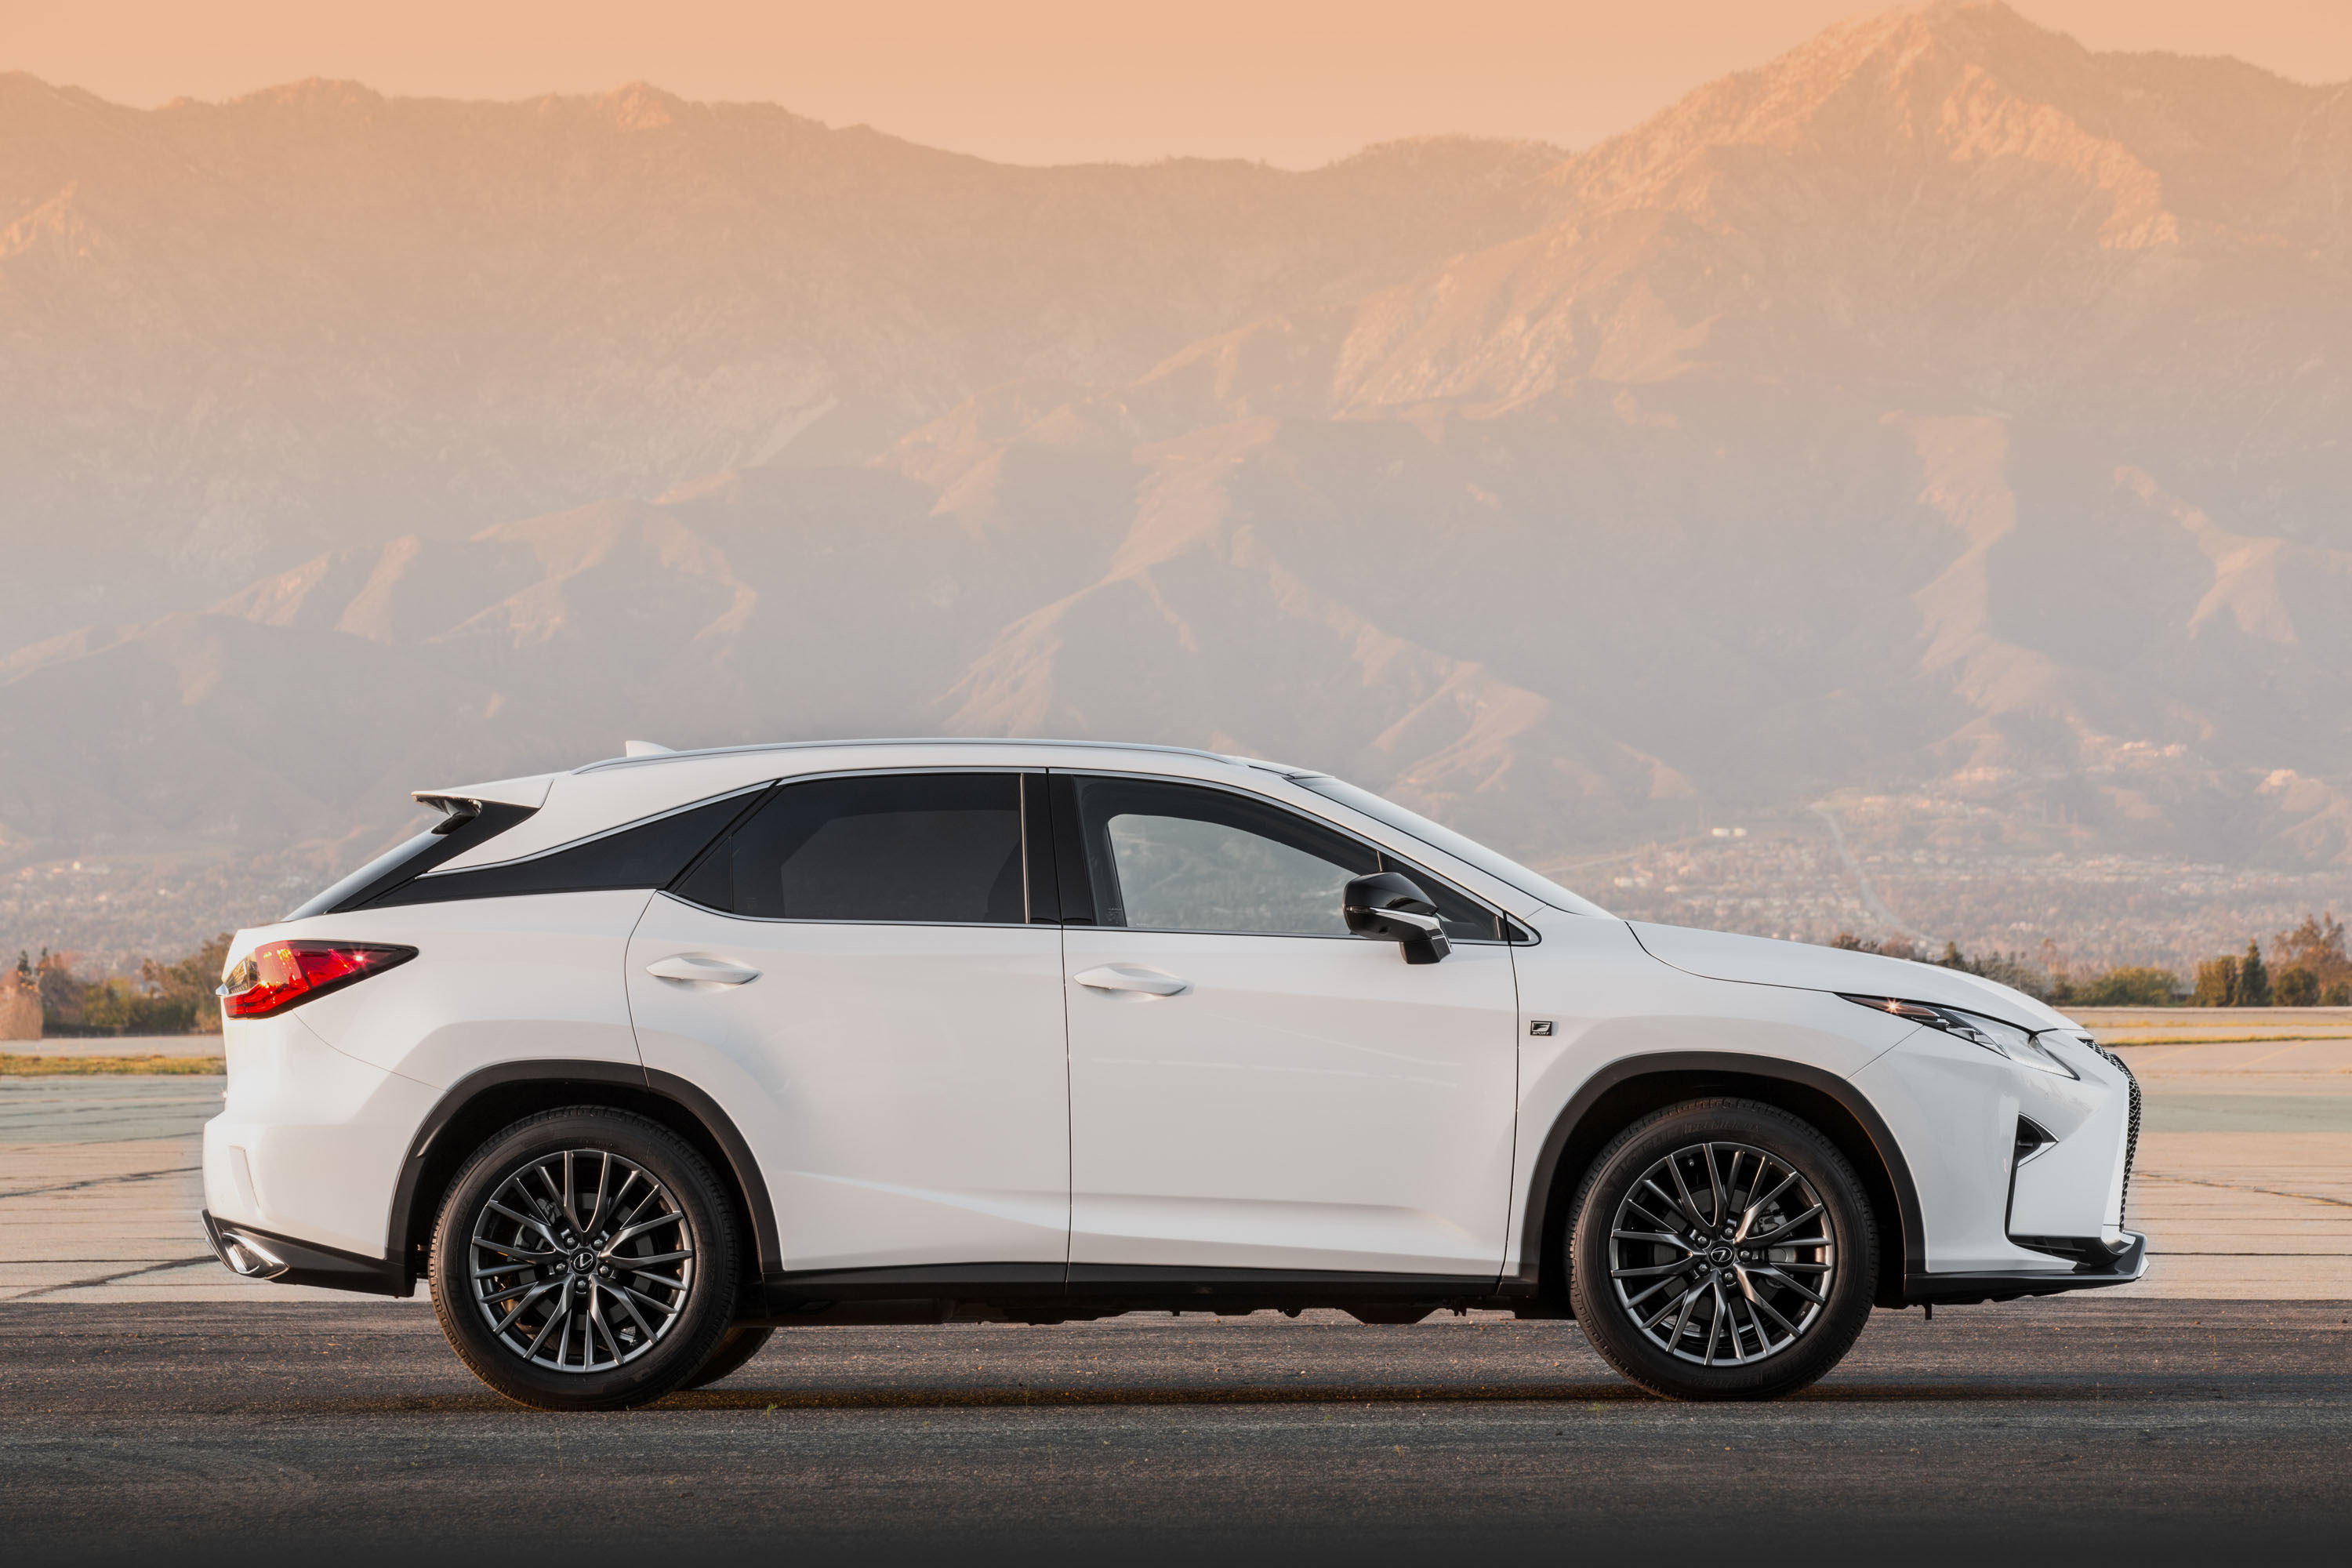 photo rx redesign reviews suv front price lexus wheel photos features base drive